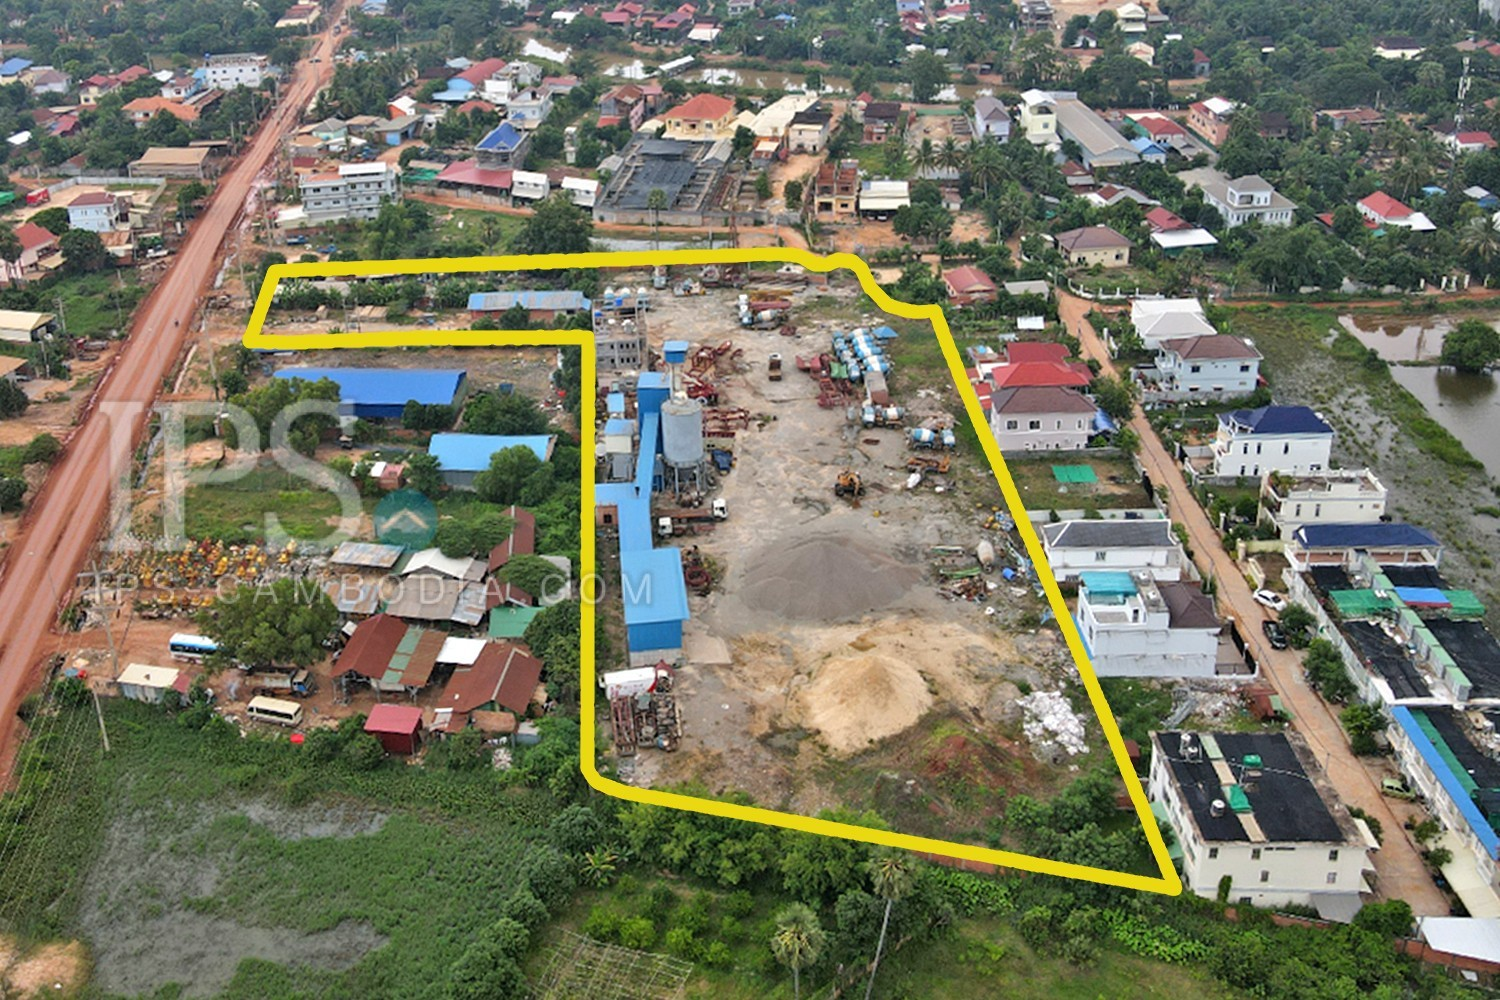 13016 sqm Land for For Sale - Svay Dangkum, Siem Reap